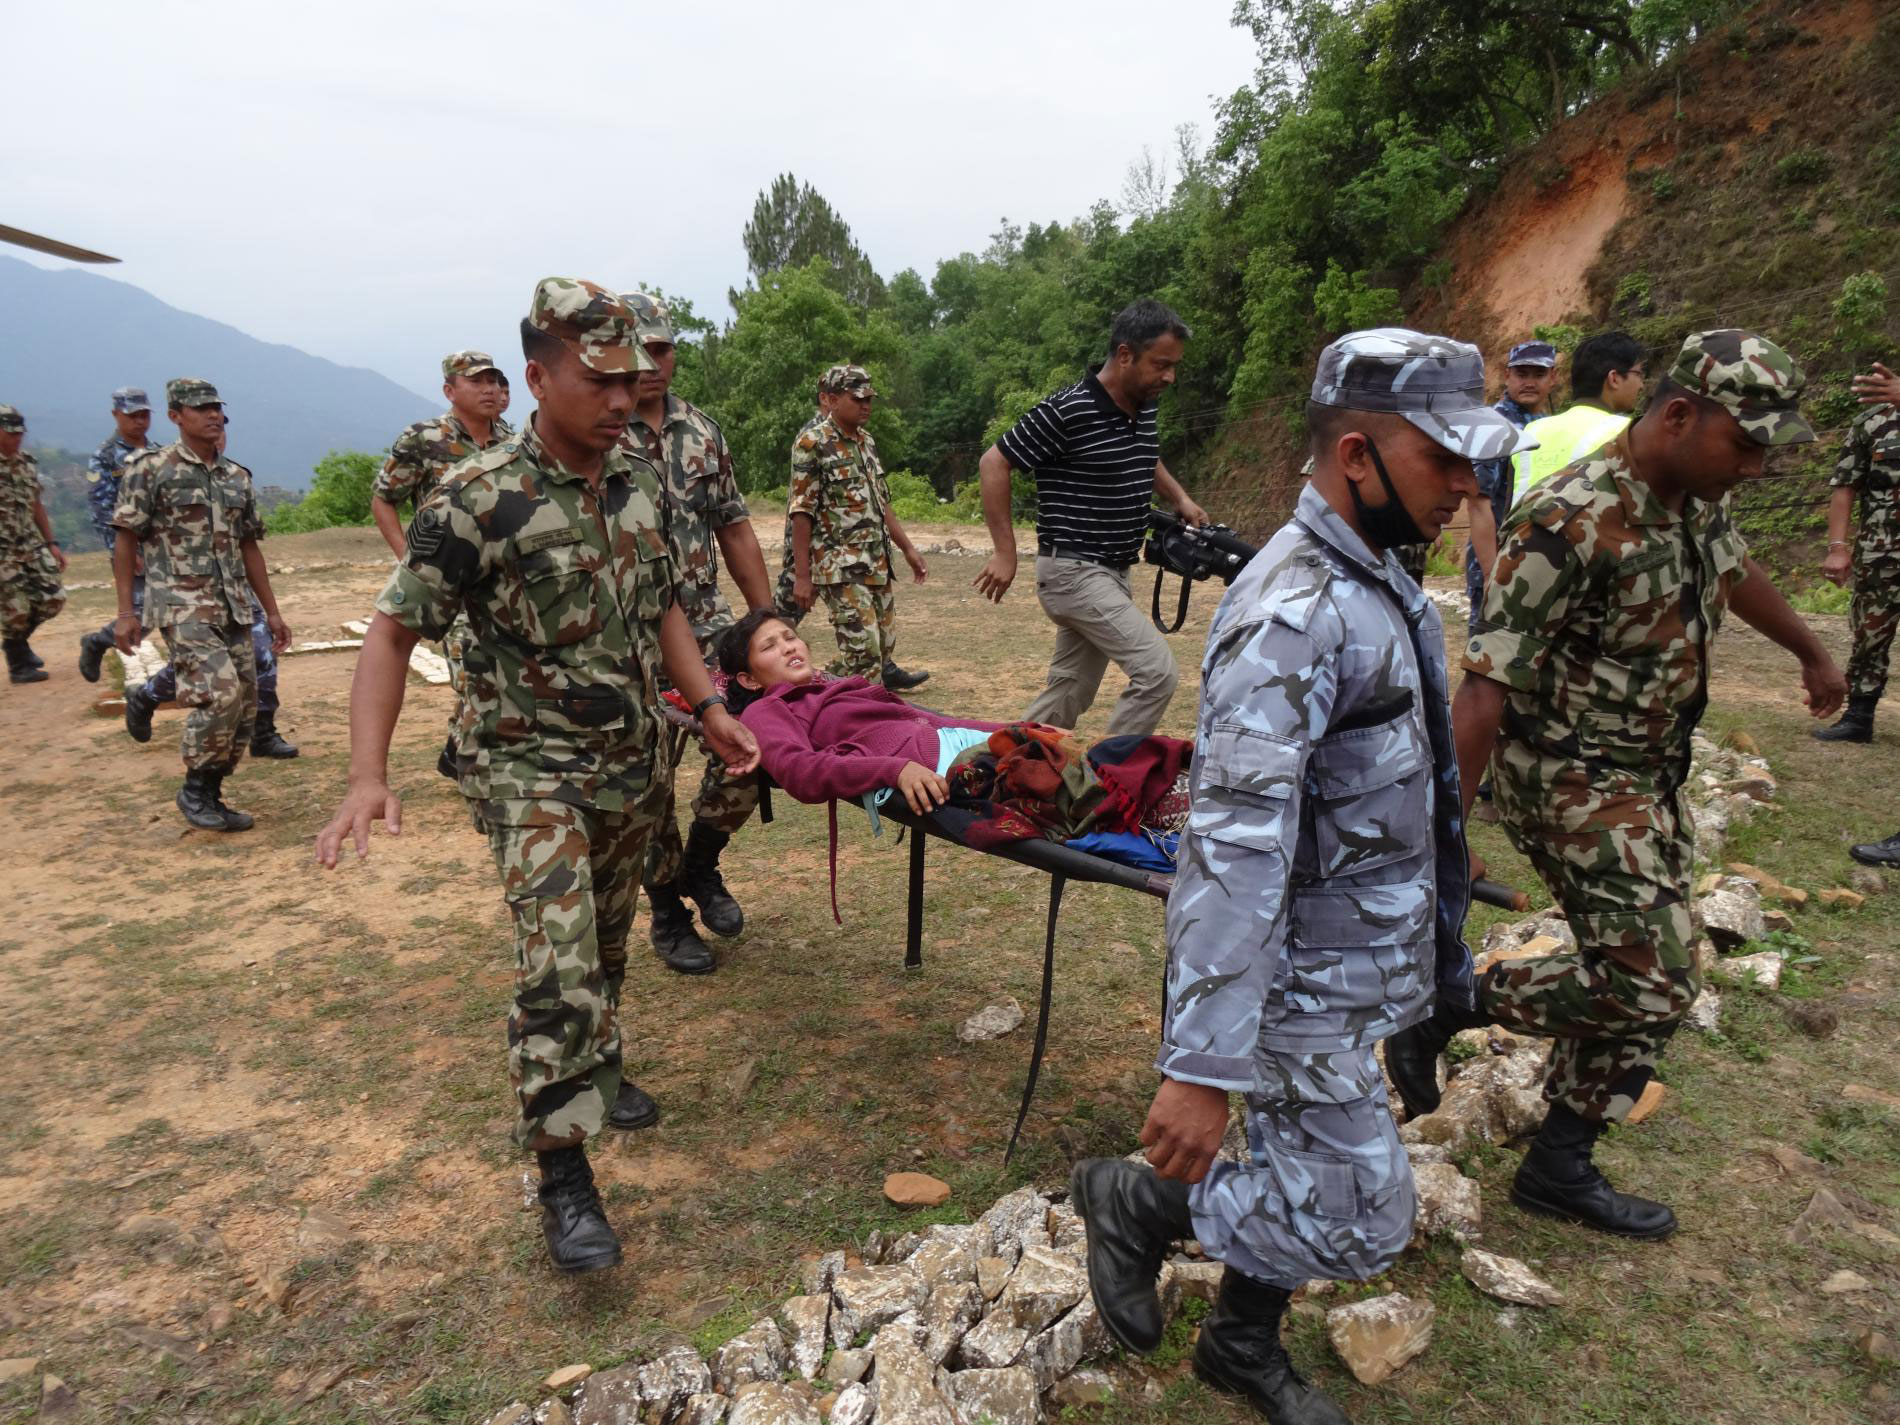 Injured woman carried out on stretcher by army and police